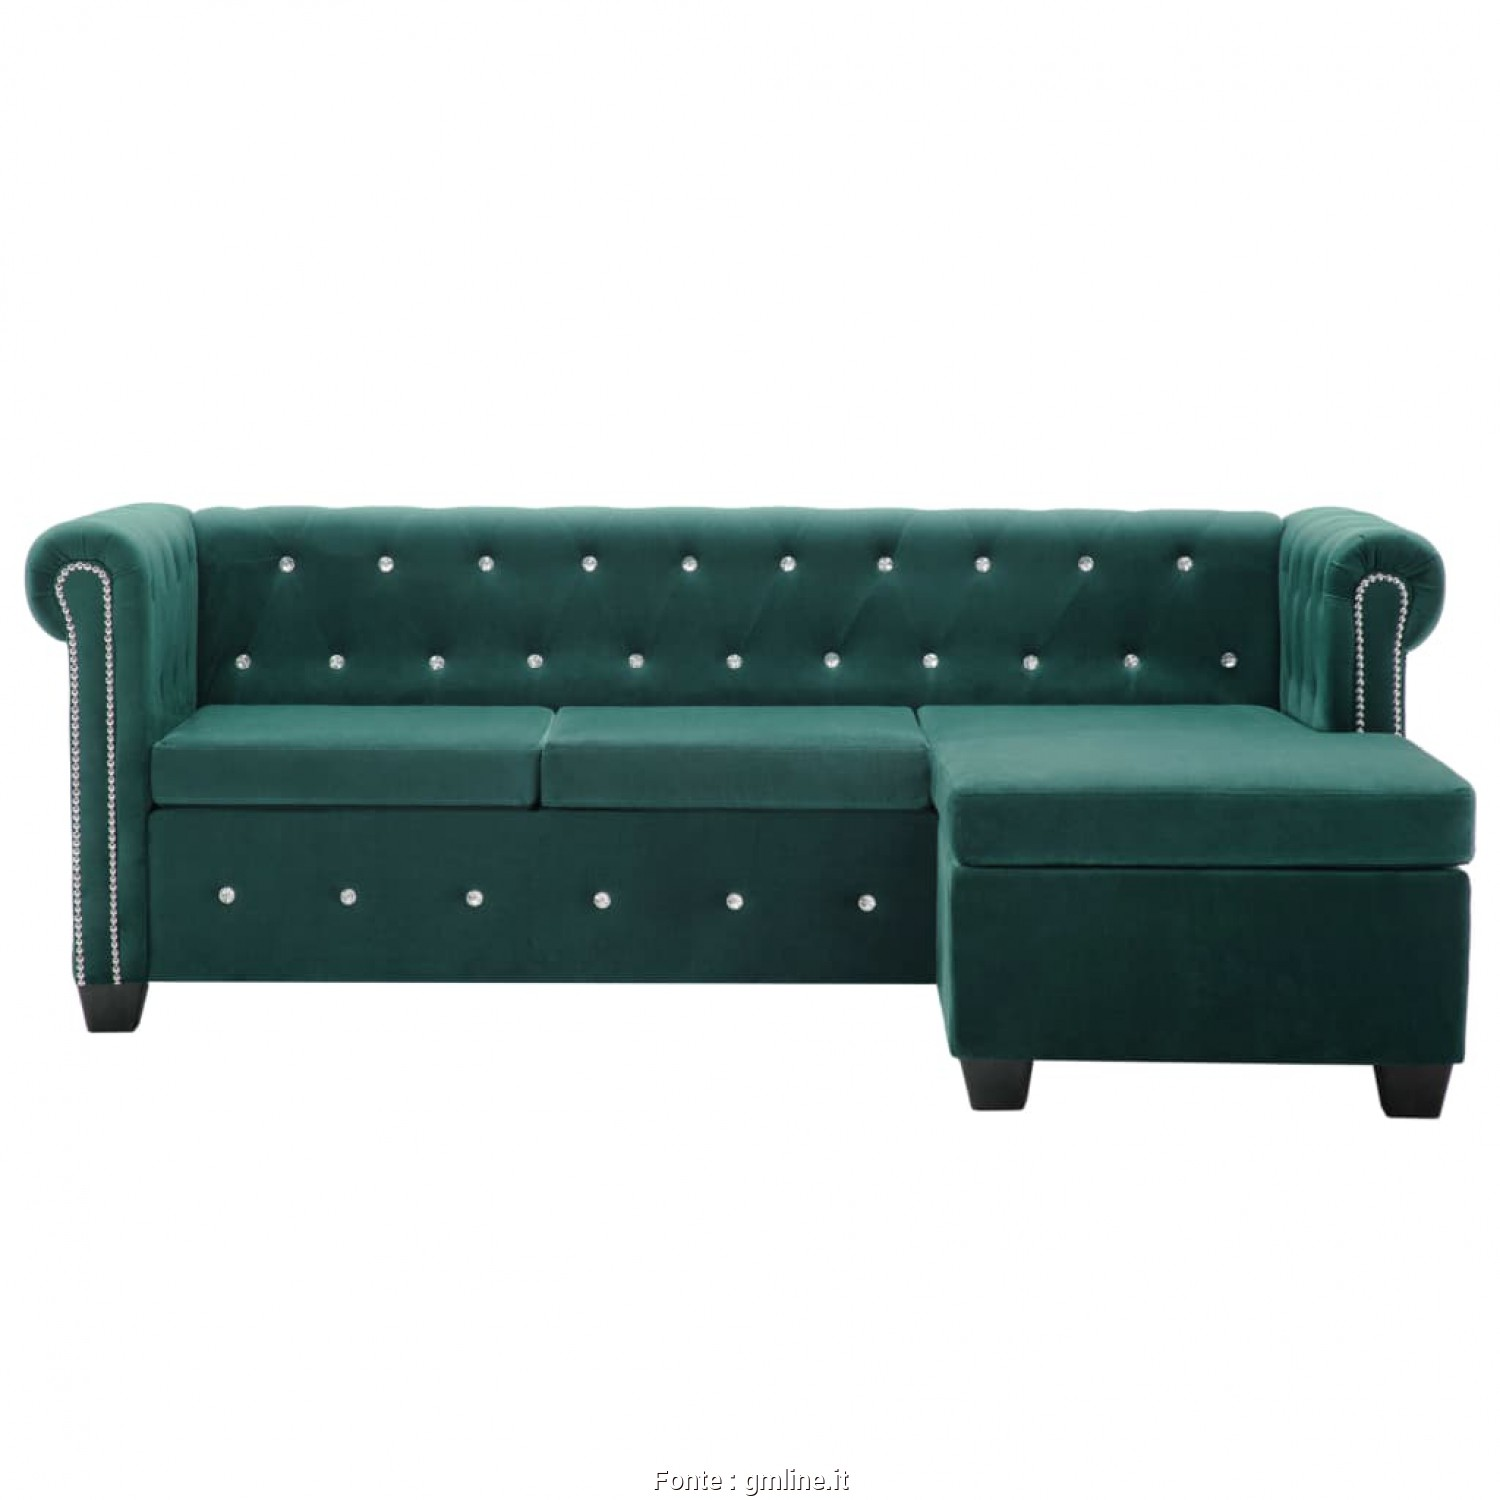 Divano Chesterfield Velluto Verde, Bello Divano Chesterfield, In Velluto 199X142X72 Cm Verde